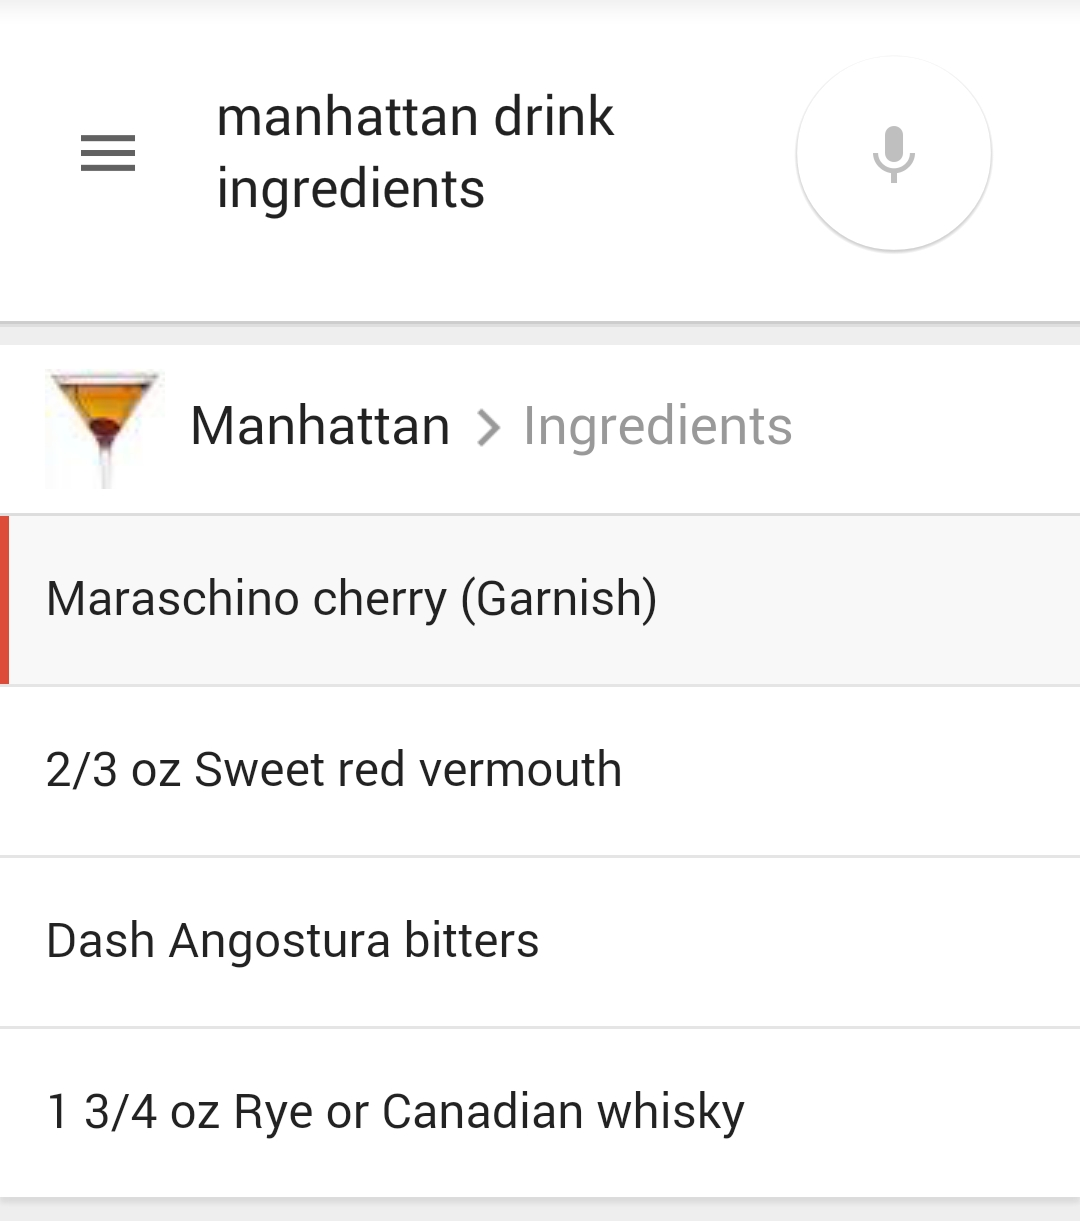 Manhattan Ingredients